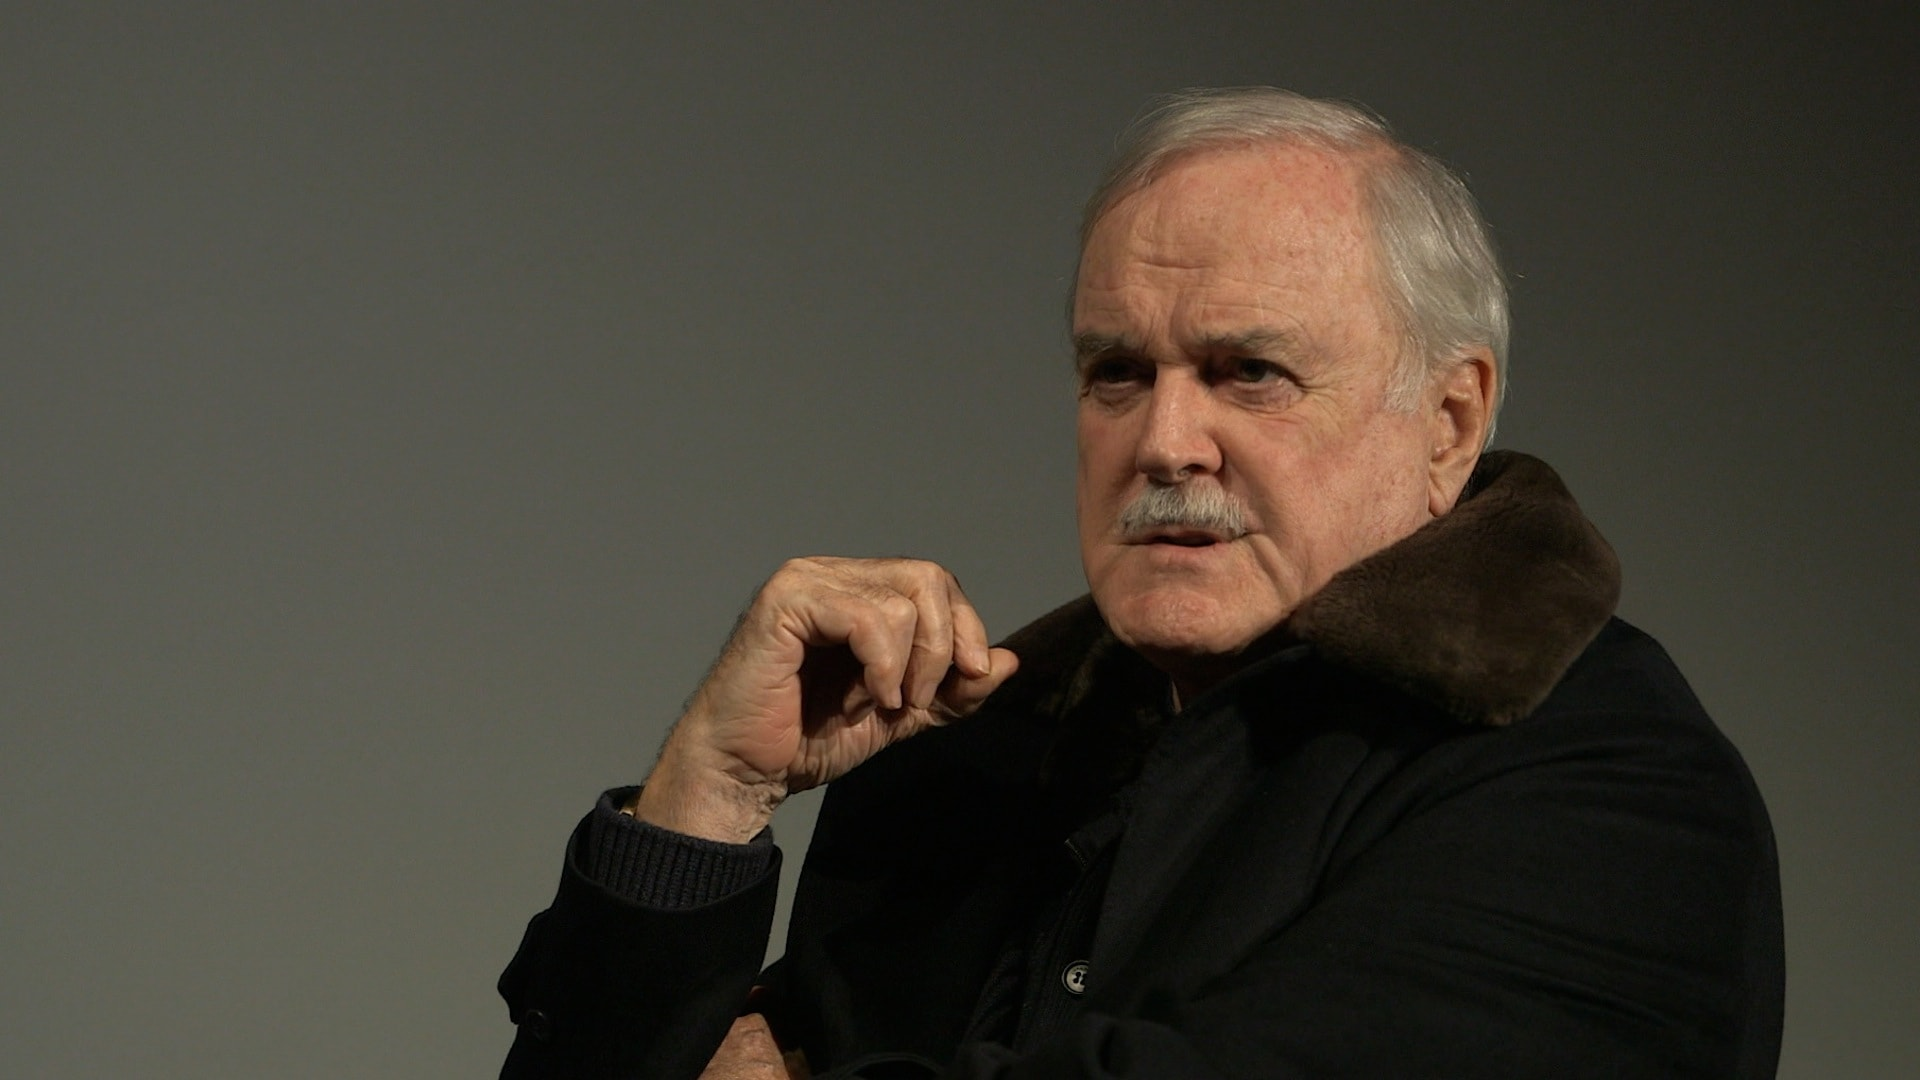 john cleese tour - HD 1920×1080